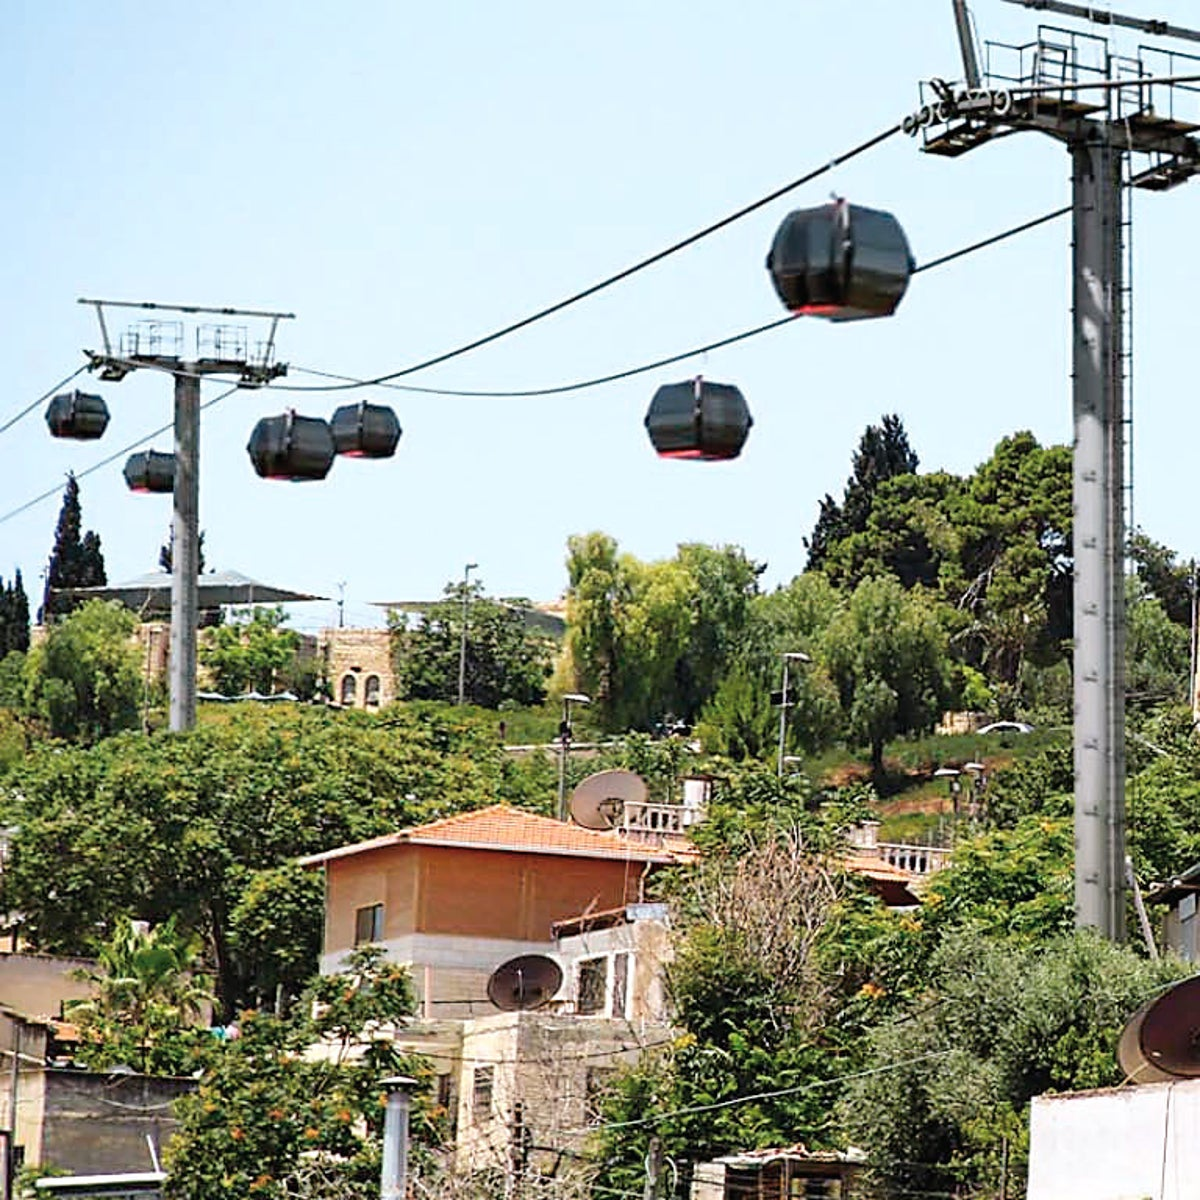 A visualization of the the cable car over Silwan, in East Jerusalem.